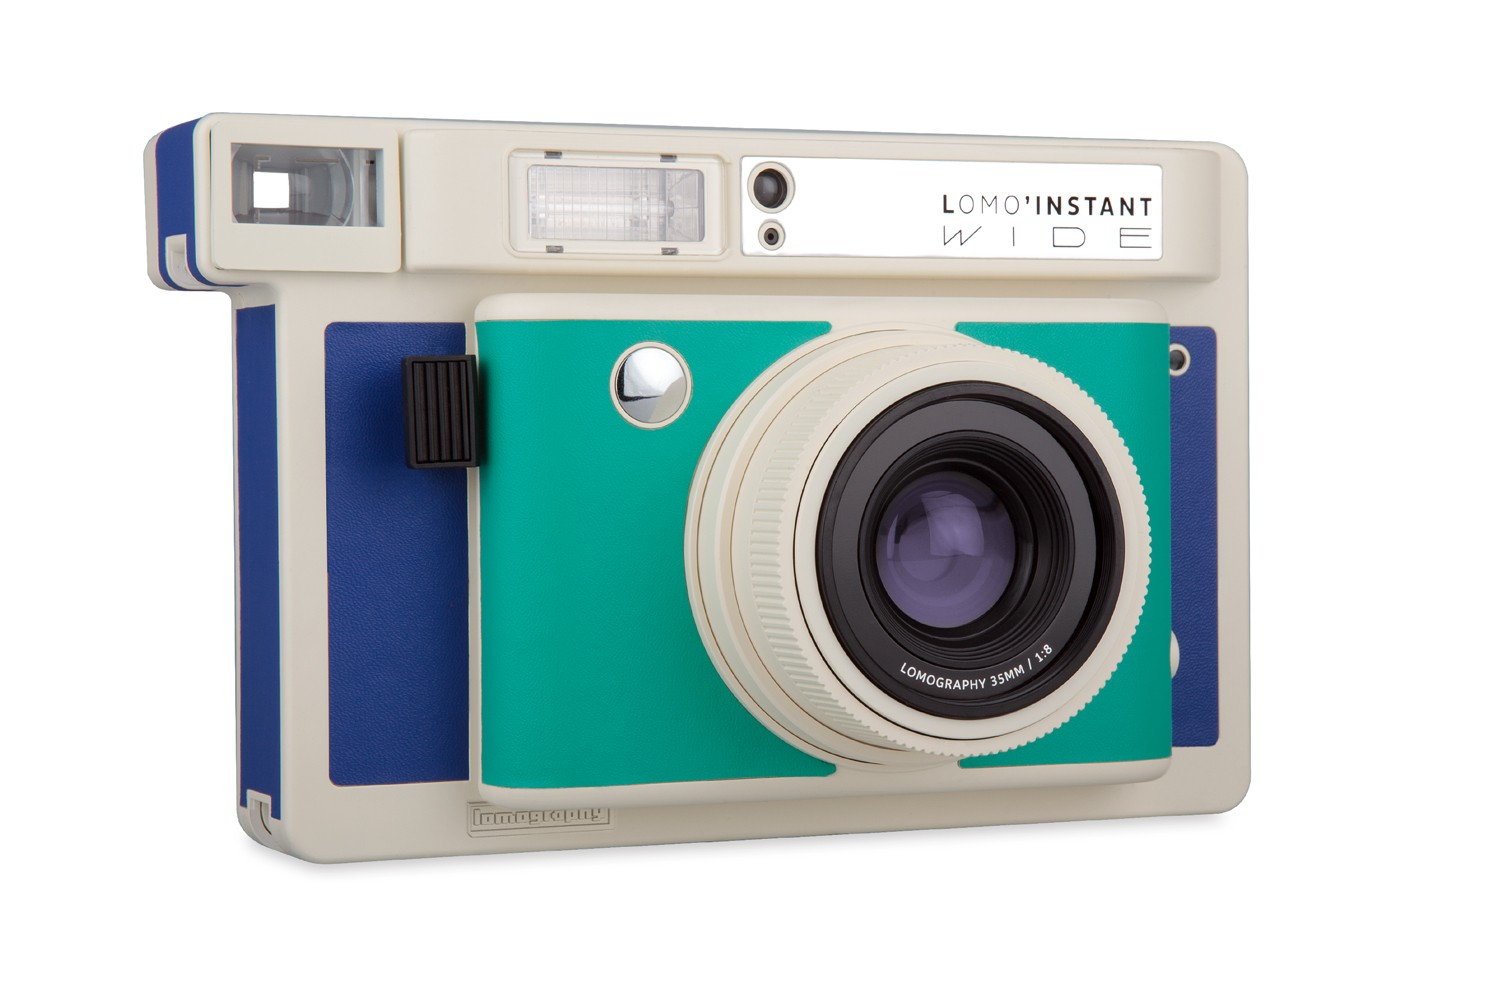 SNAPPP-Lomo'instant wide-side